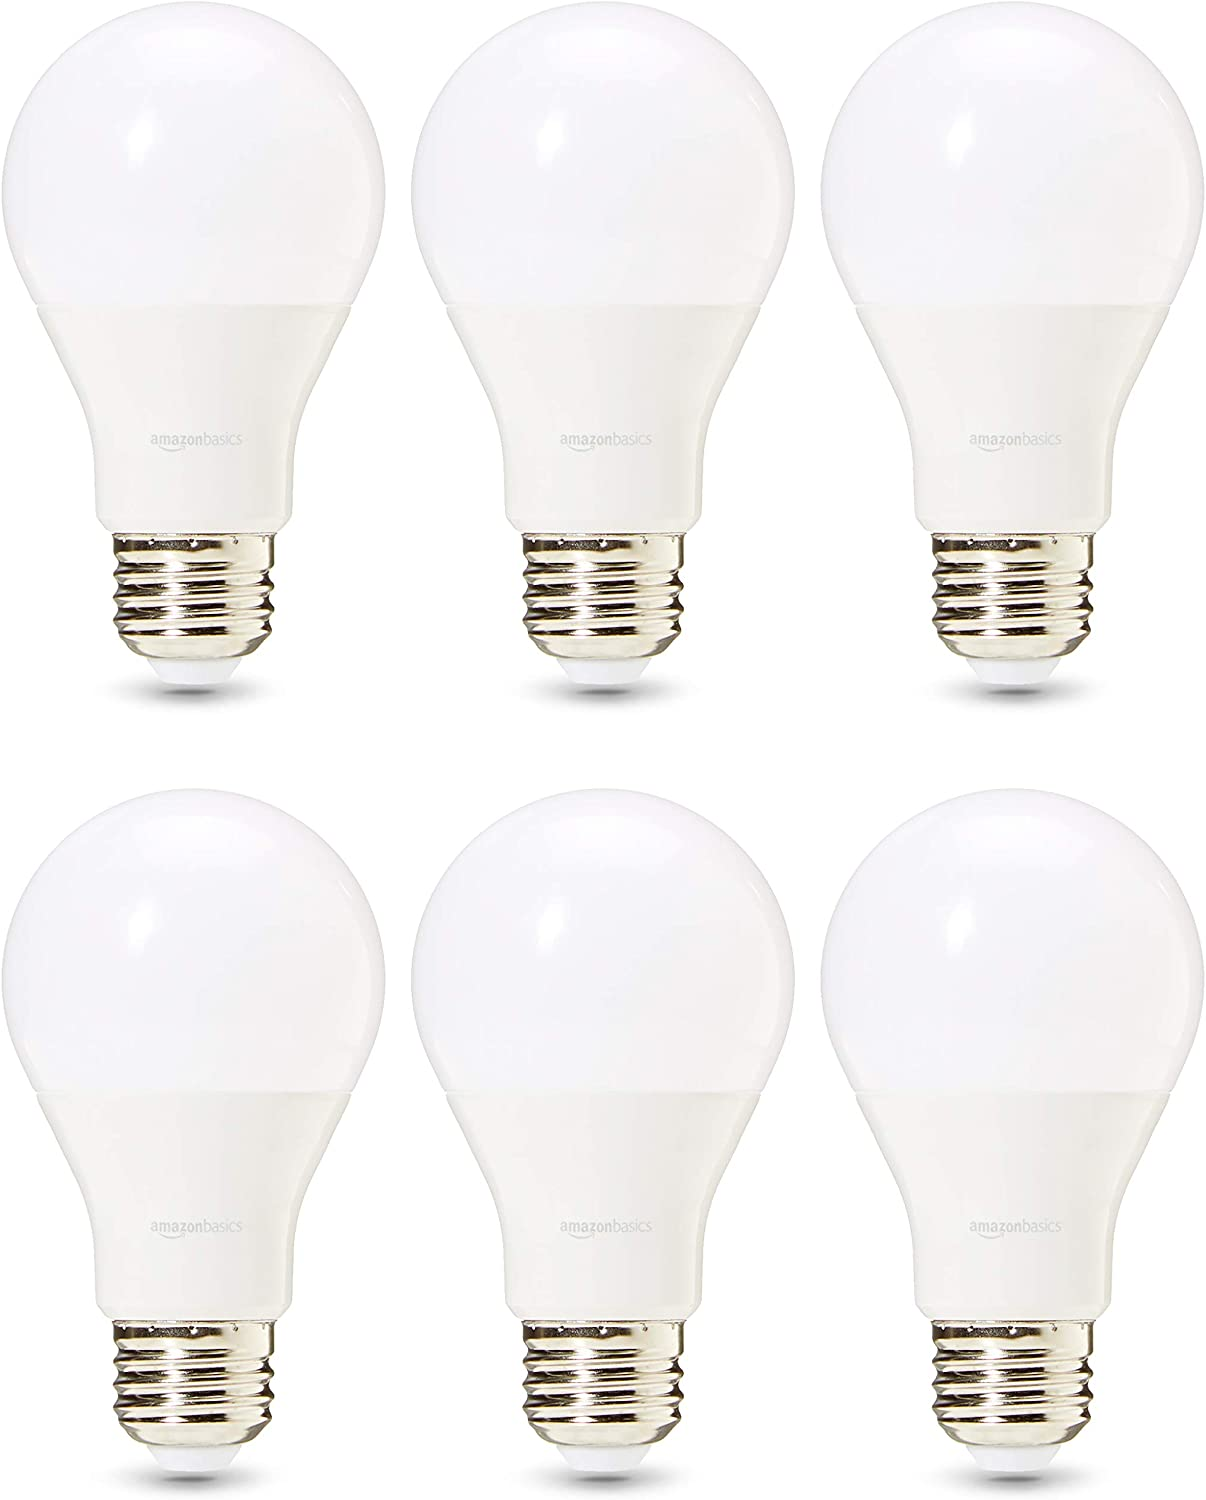 AmazonBasics Commercial Grade 25,000 Hour LED Light Bulb | 60-Watt Equivalent, A19, Soft White, Dimmable, 6-Pack